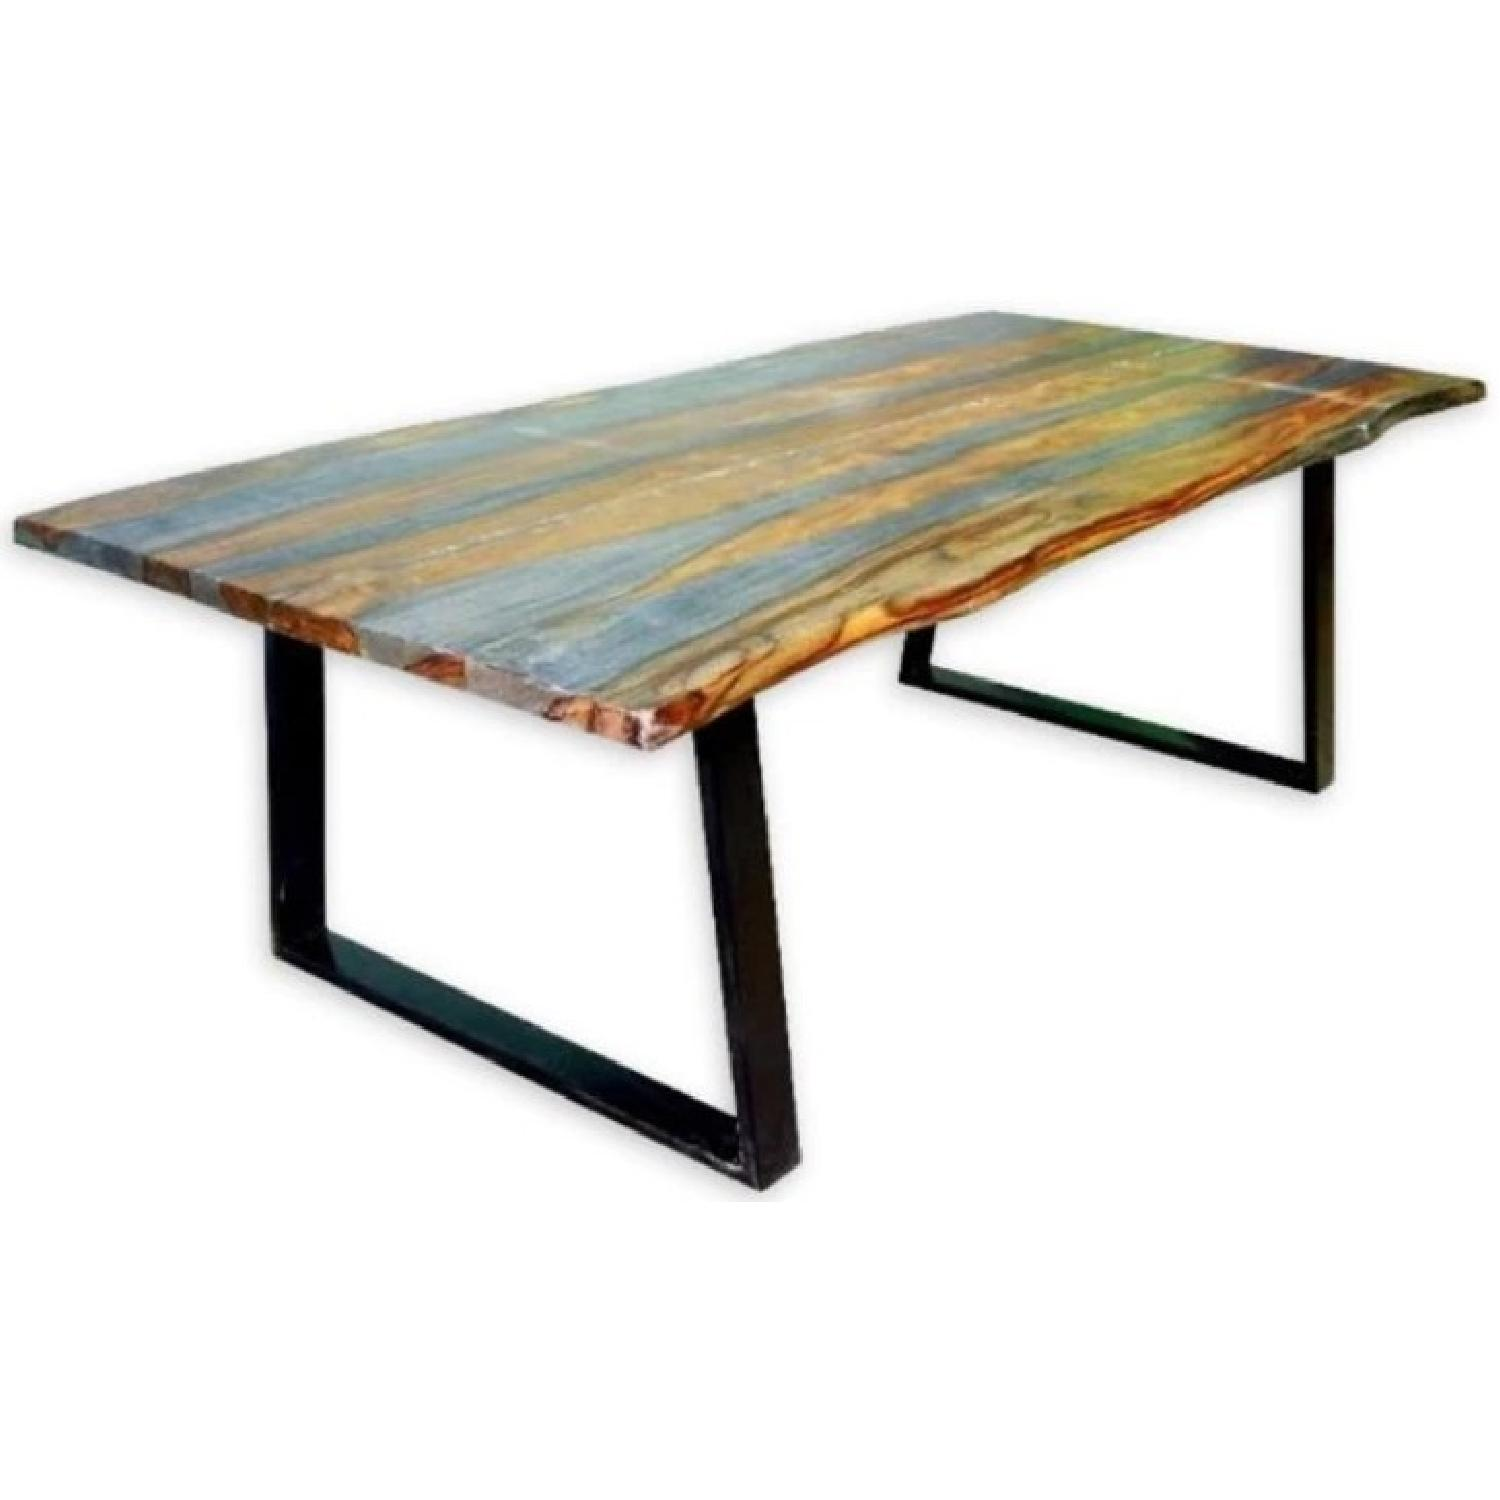 Modern Dining Table w/ Solid Wood Live Edge Top & Metal Legs